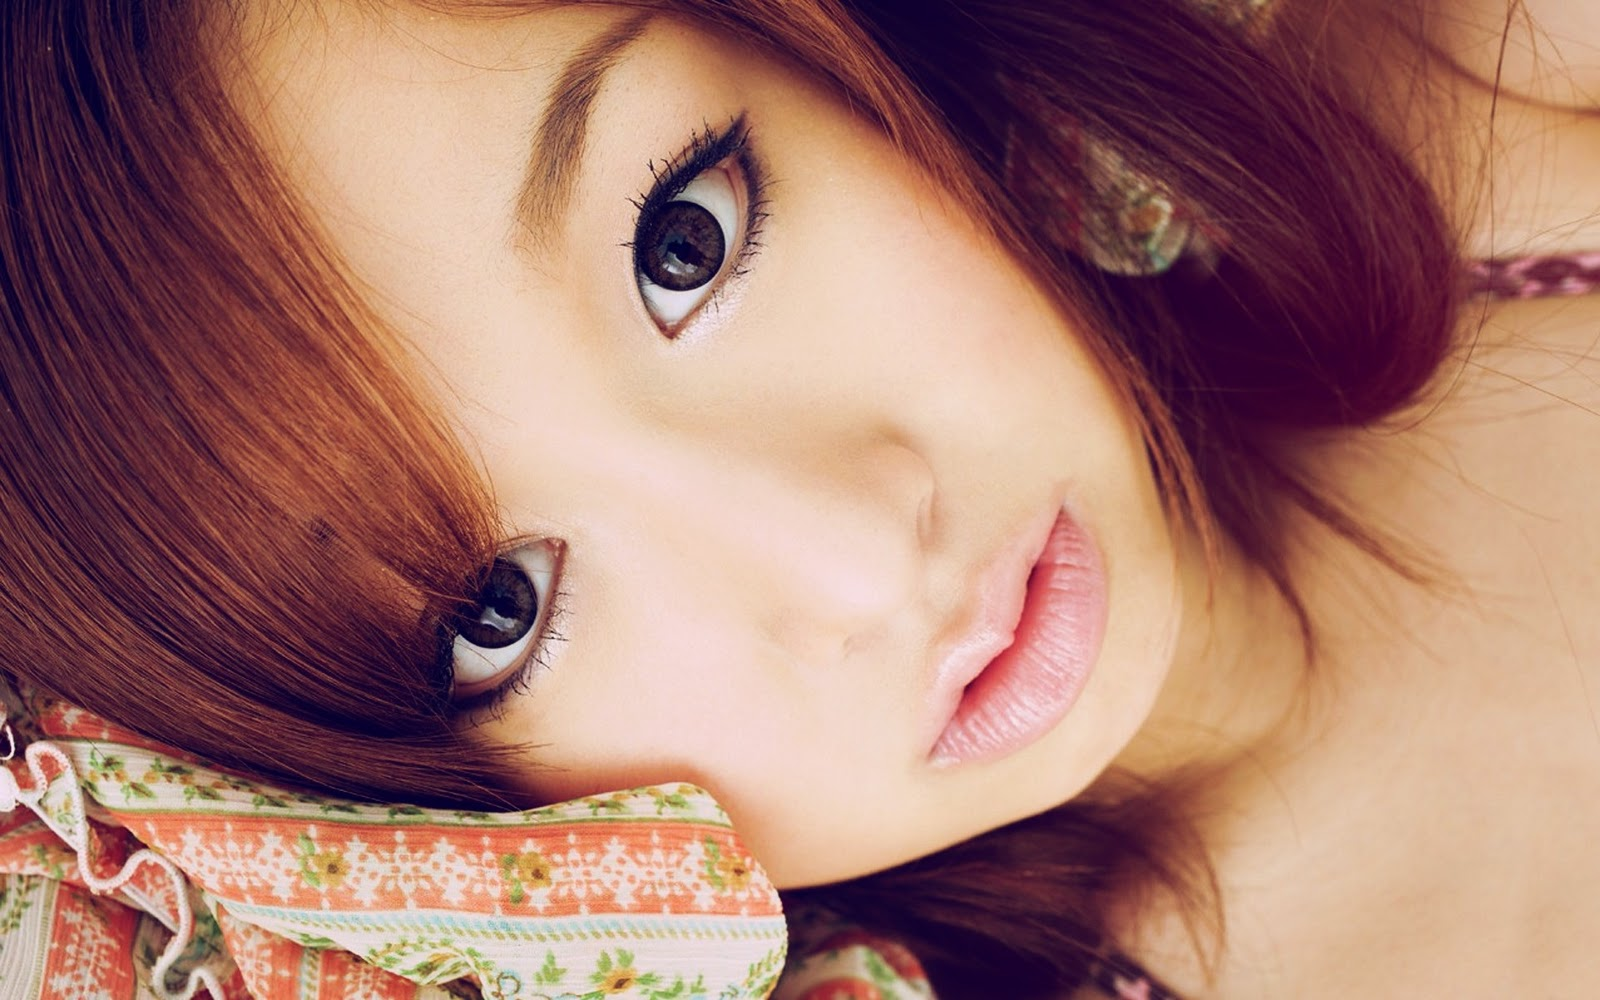 Cute Chines and Japanese Girls Wallpapers 2012-2013